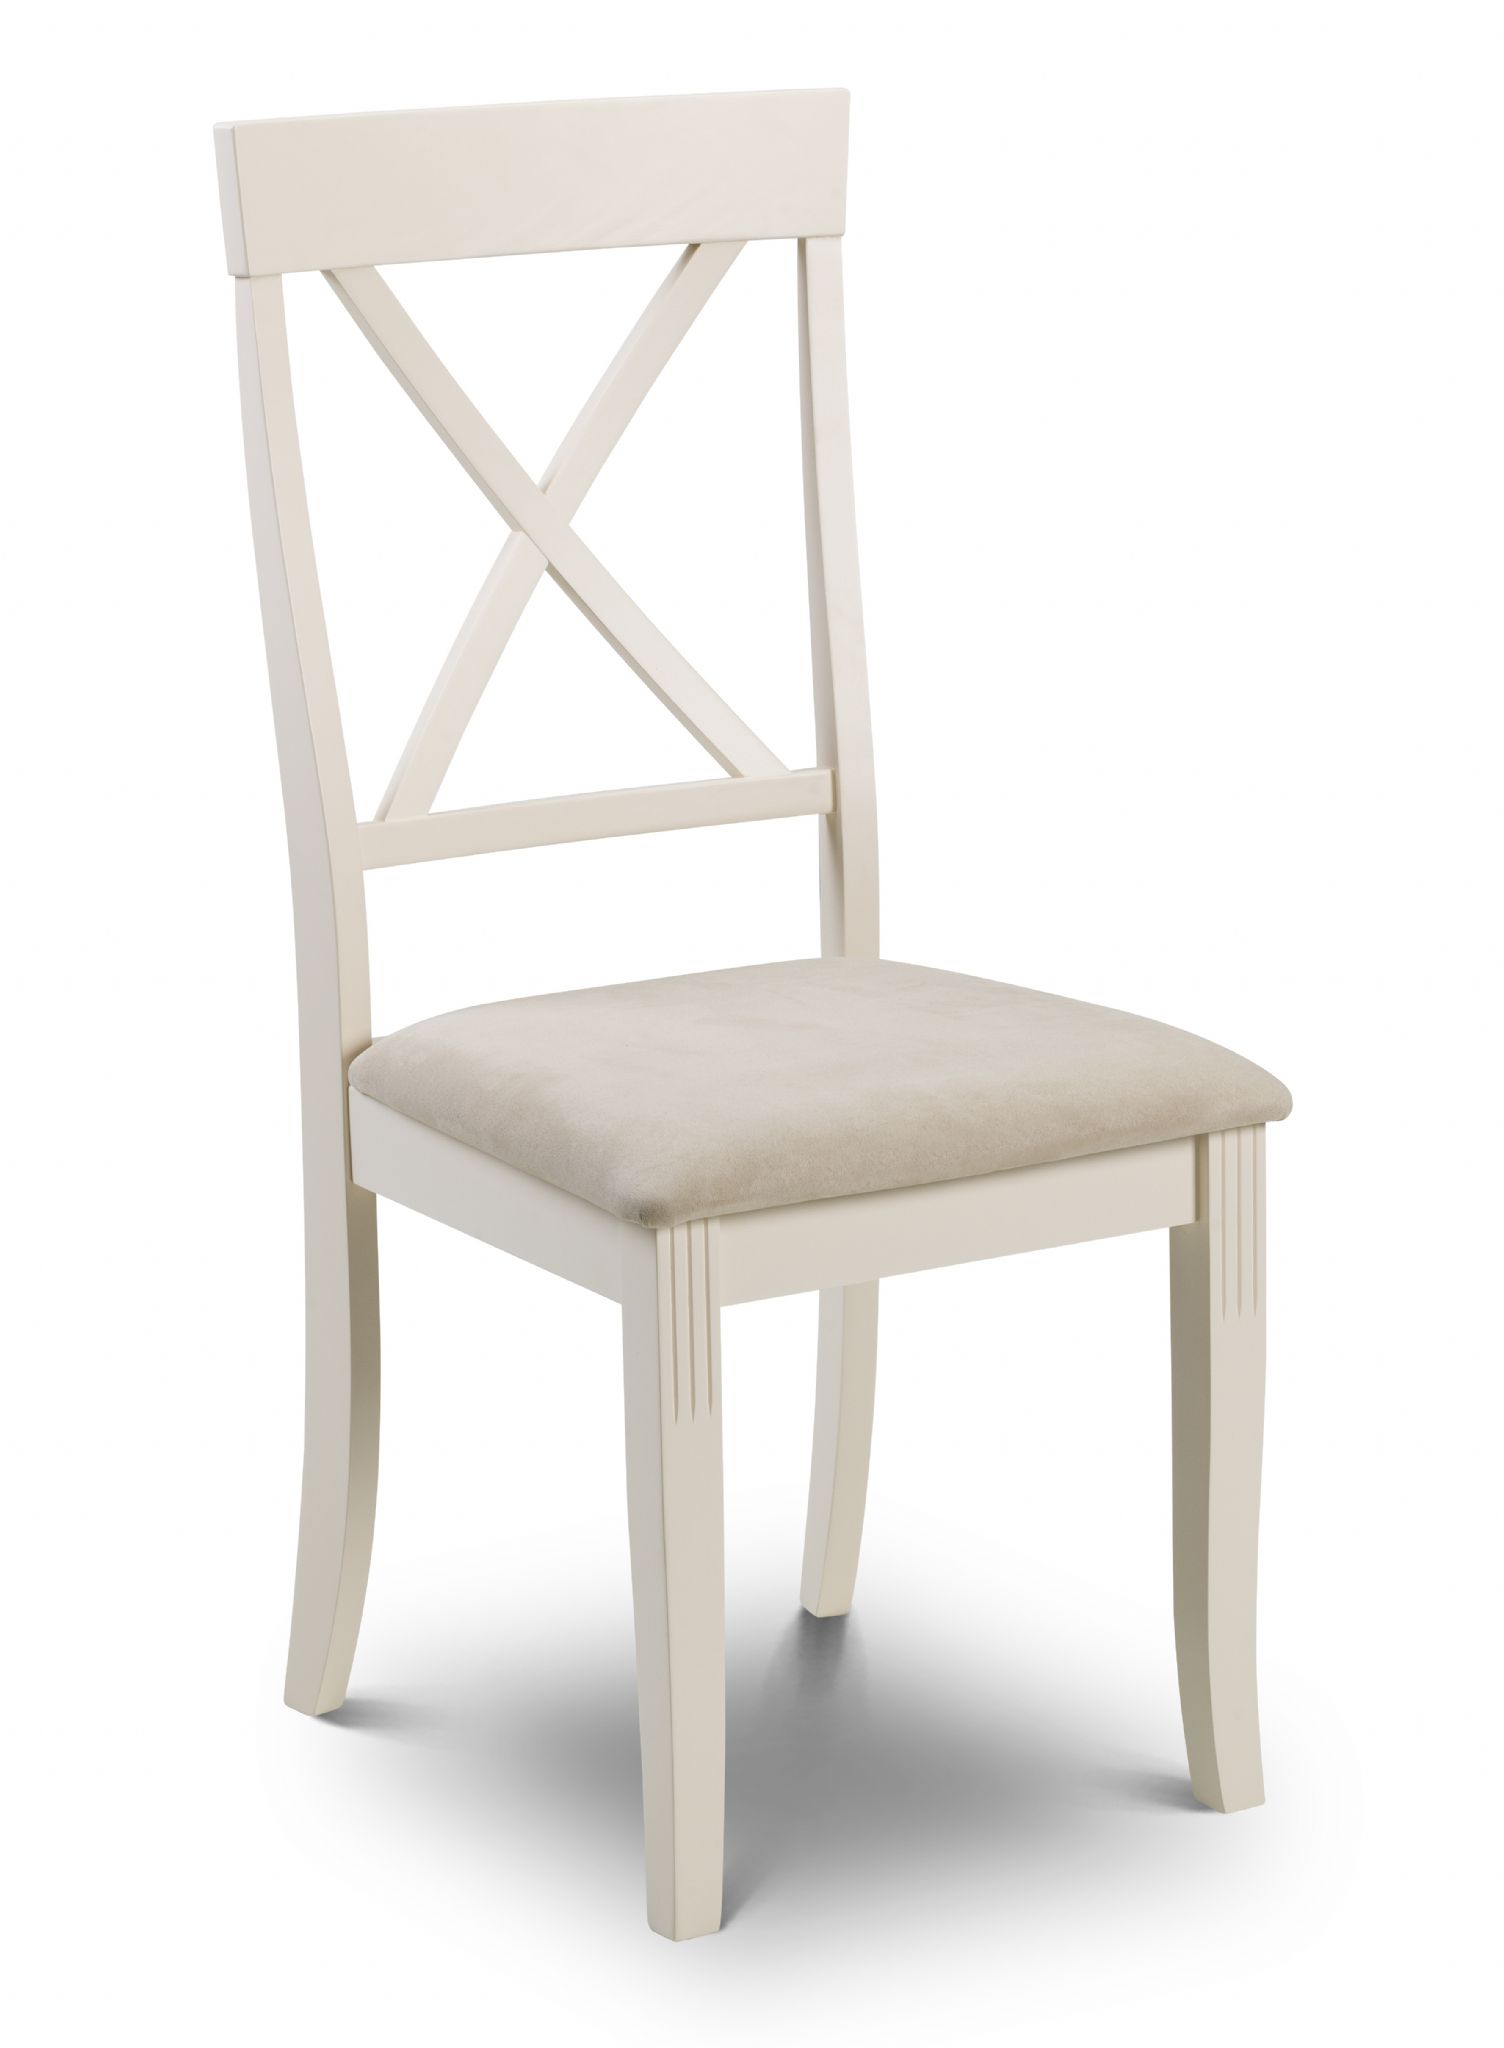 ivory dining chairs uk swing chair outdoor patio guernica and suede jb183